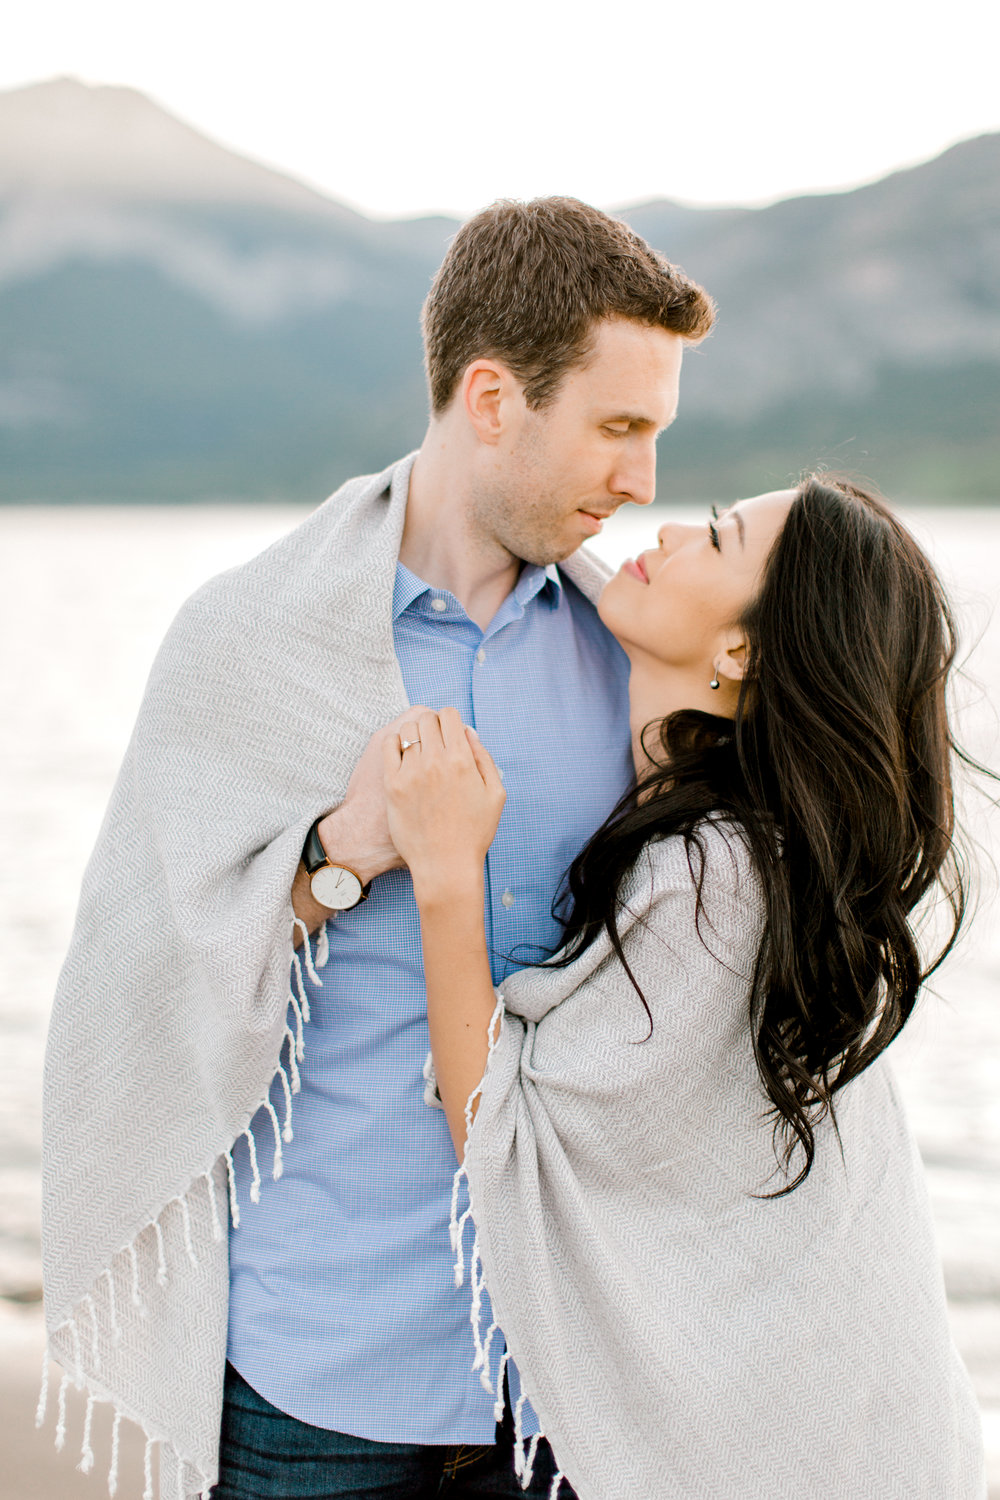 OliviaAndrewEngagement(141of373).jpg